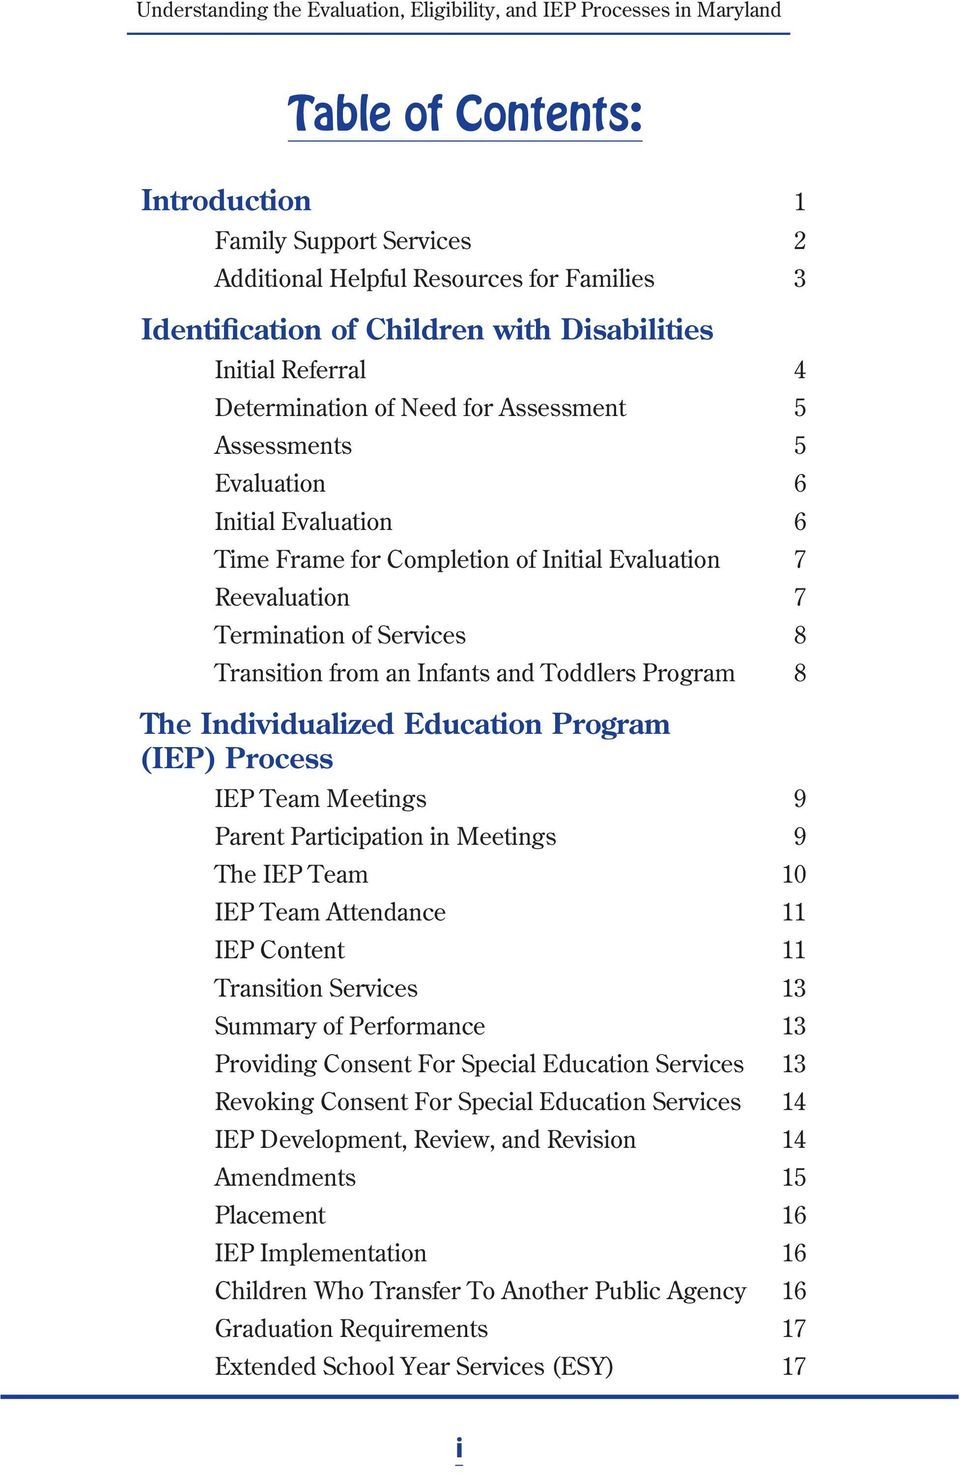 8 The Individualized Education Program (IEP) Process IEP Team Meetings 9 Parent Participation in Meetings 9 The IEP Team 10 IEP Team Attendance 11 IEP Content 11 Transition Services 13 Summary of